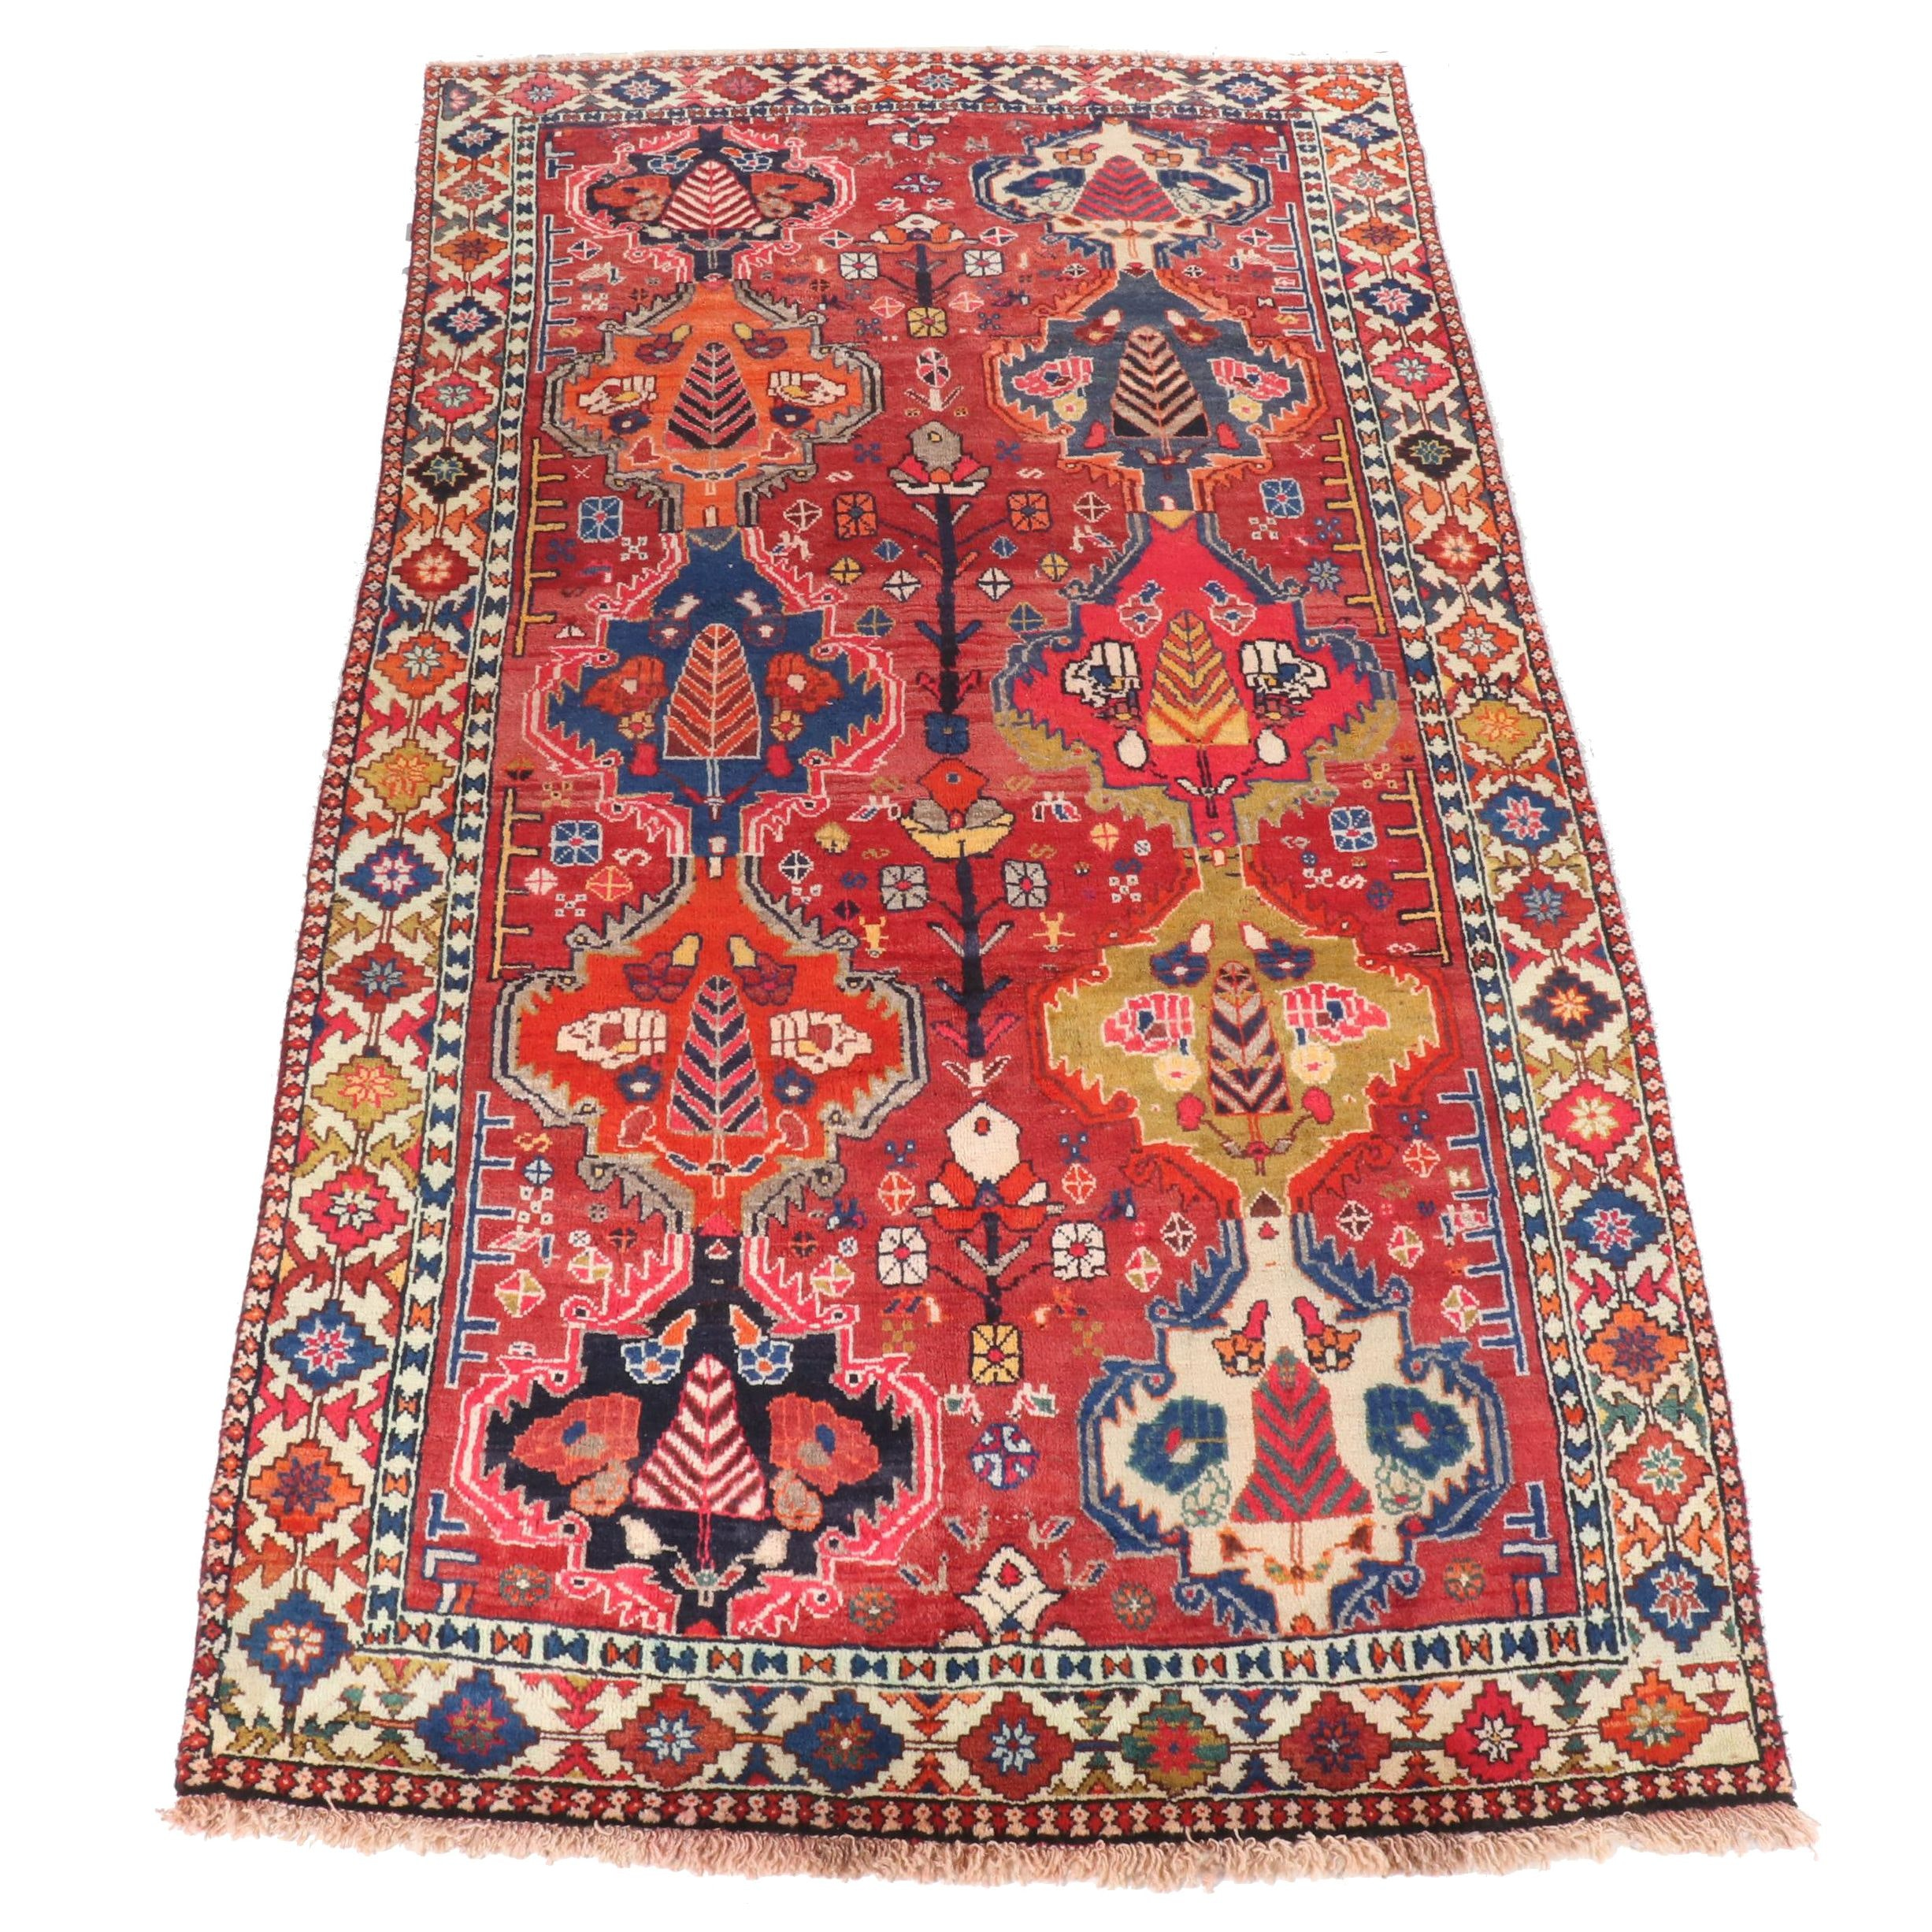 Hand-Knotted Persian Bakhtiari Wool Rug